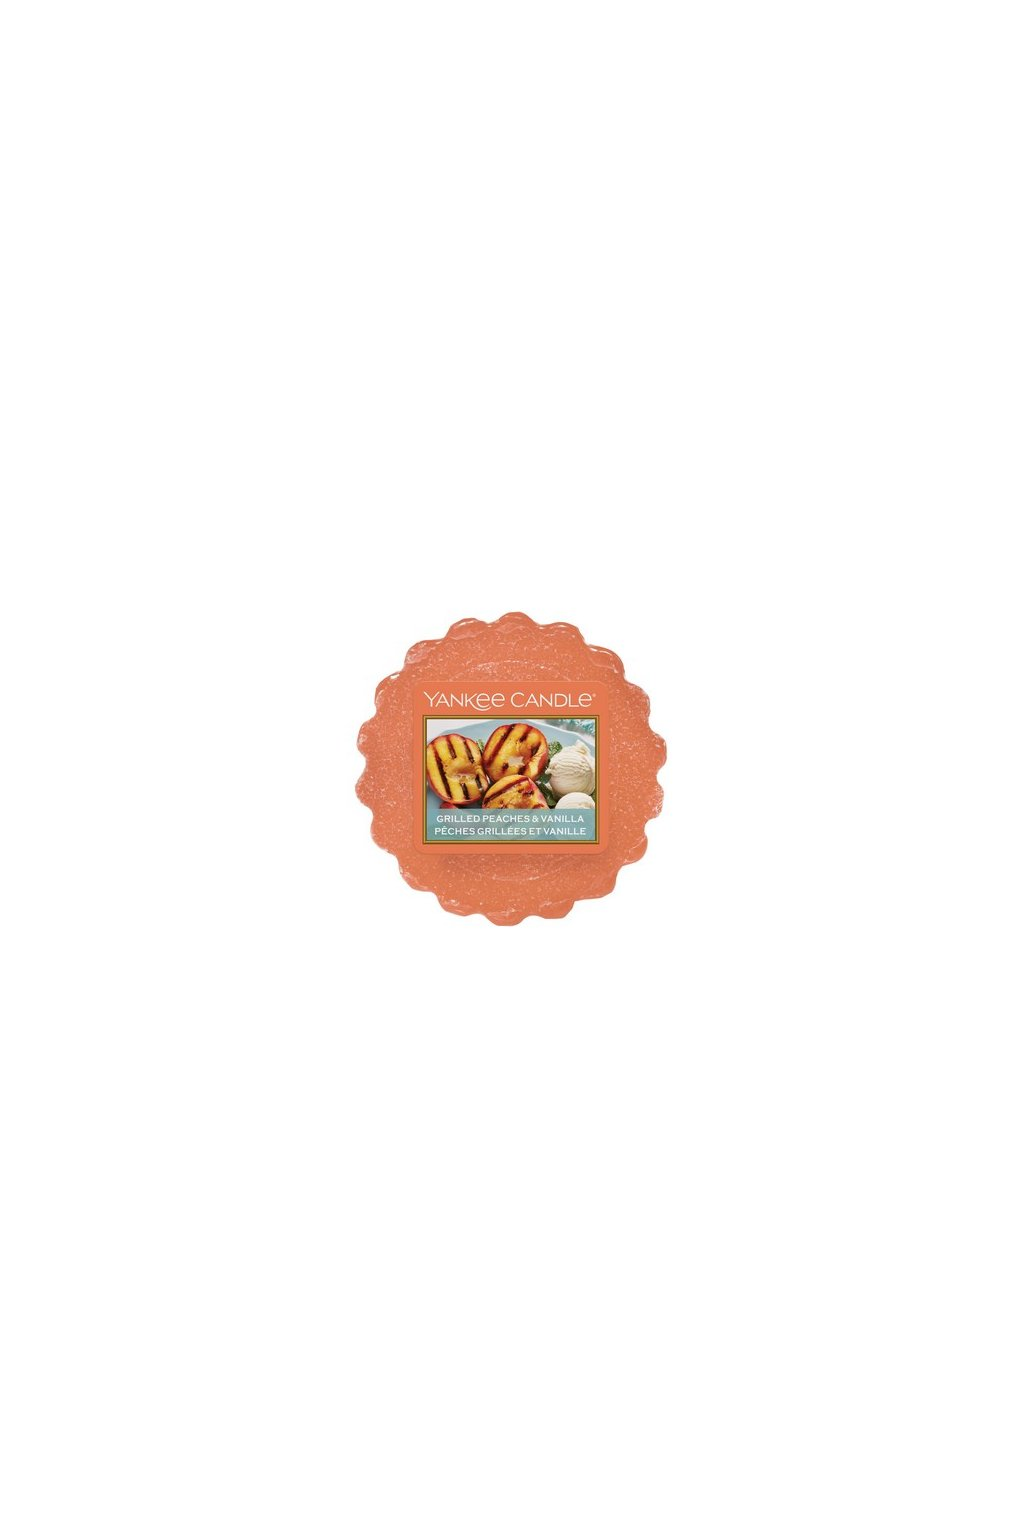 Yankee Candle Grilled Peaches & Vanila 22g